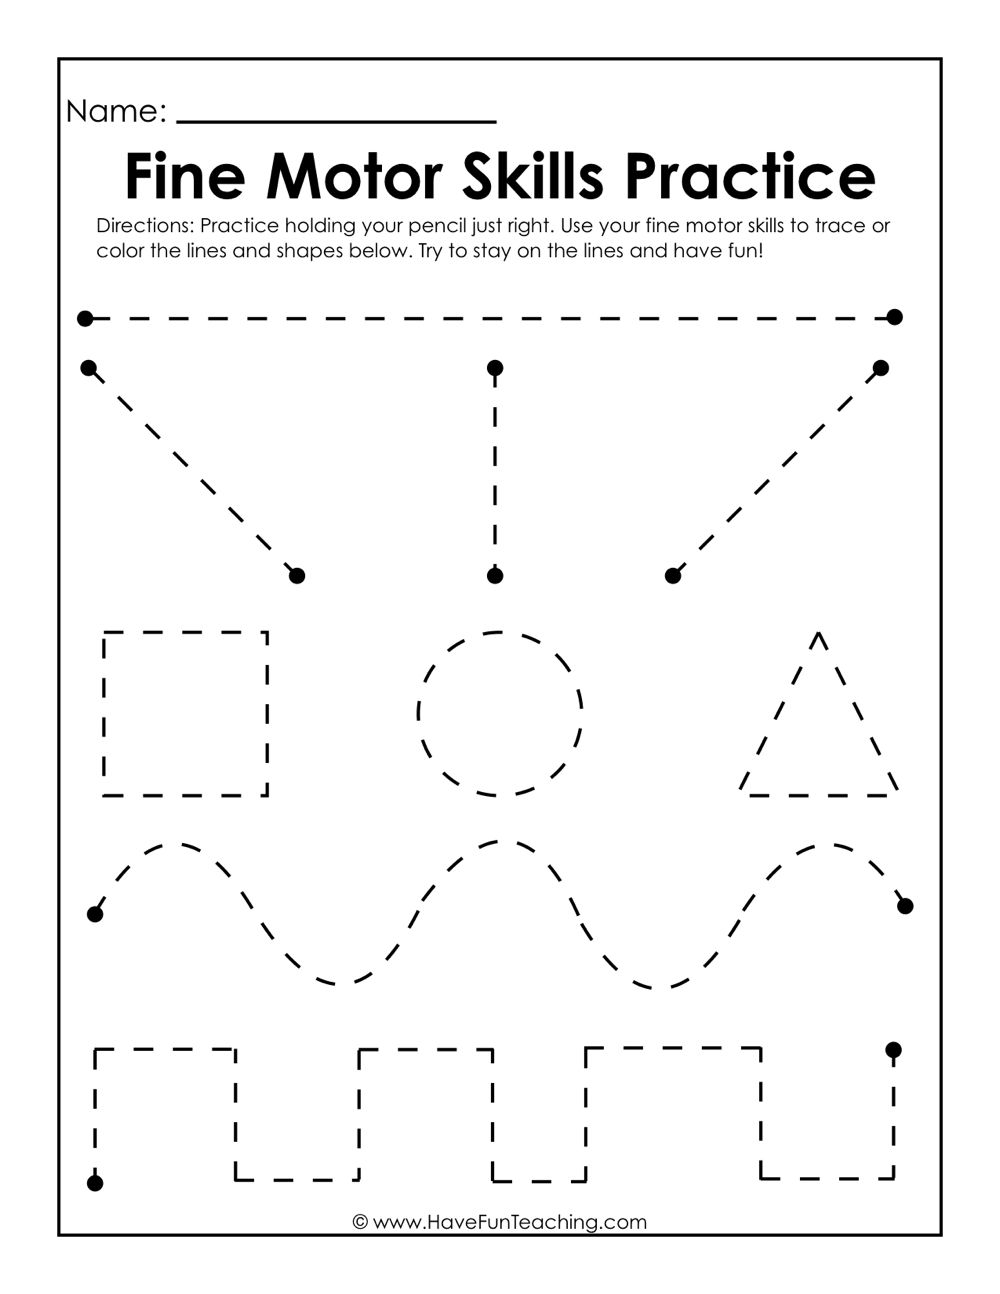 Worksheets Fine Motor Skills Worksheets fine motor skills practice worksheet worksheets and have fun teaching